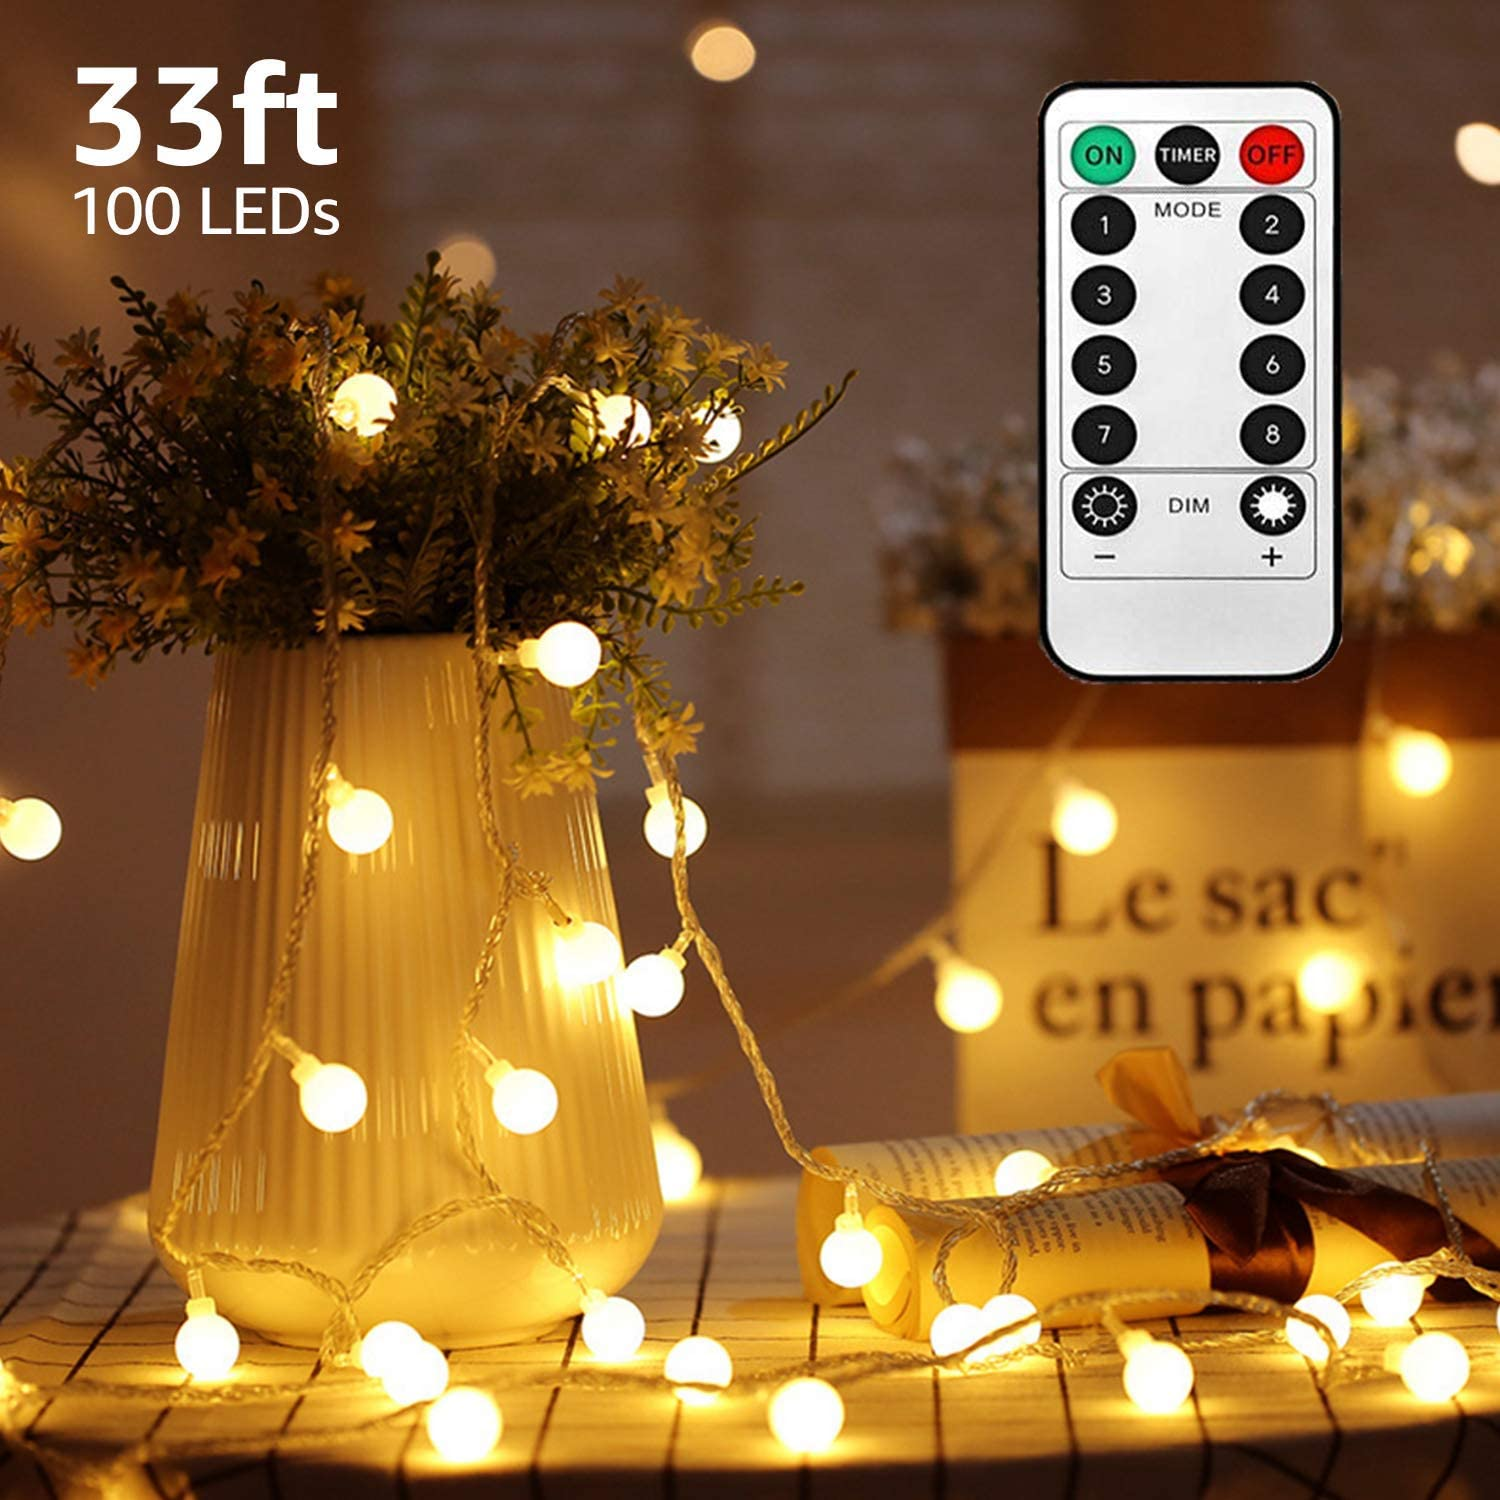 TuoPuLife LED String Lights,33ft 100 Led Waterproof Ball Lights, Battery Powered Starry Fairy Globe String Lights with Remote Timer for Bedroom, Garden, Christmas Tree, Wedding, Party (Warm Light)